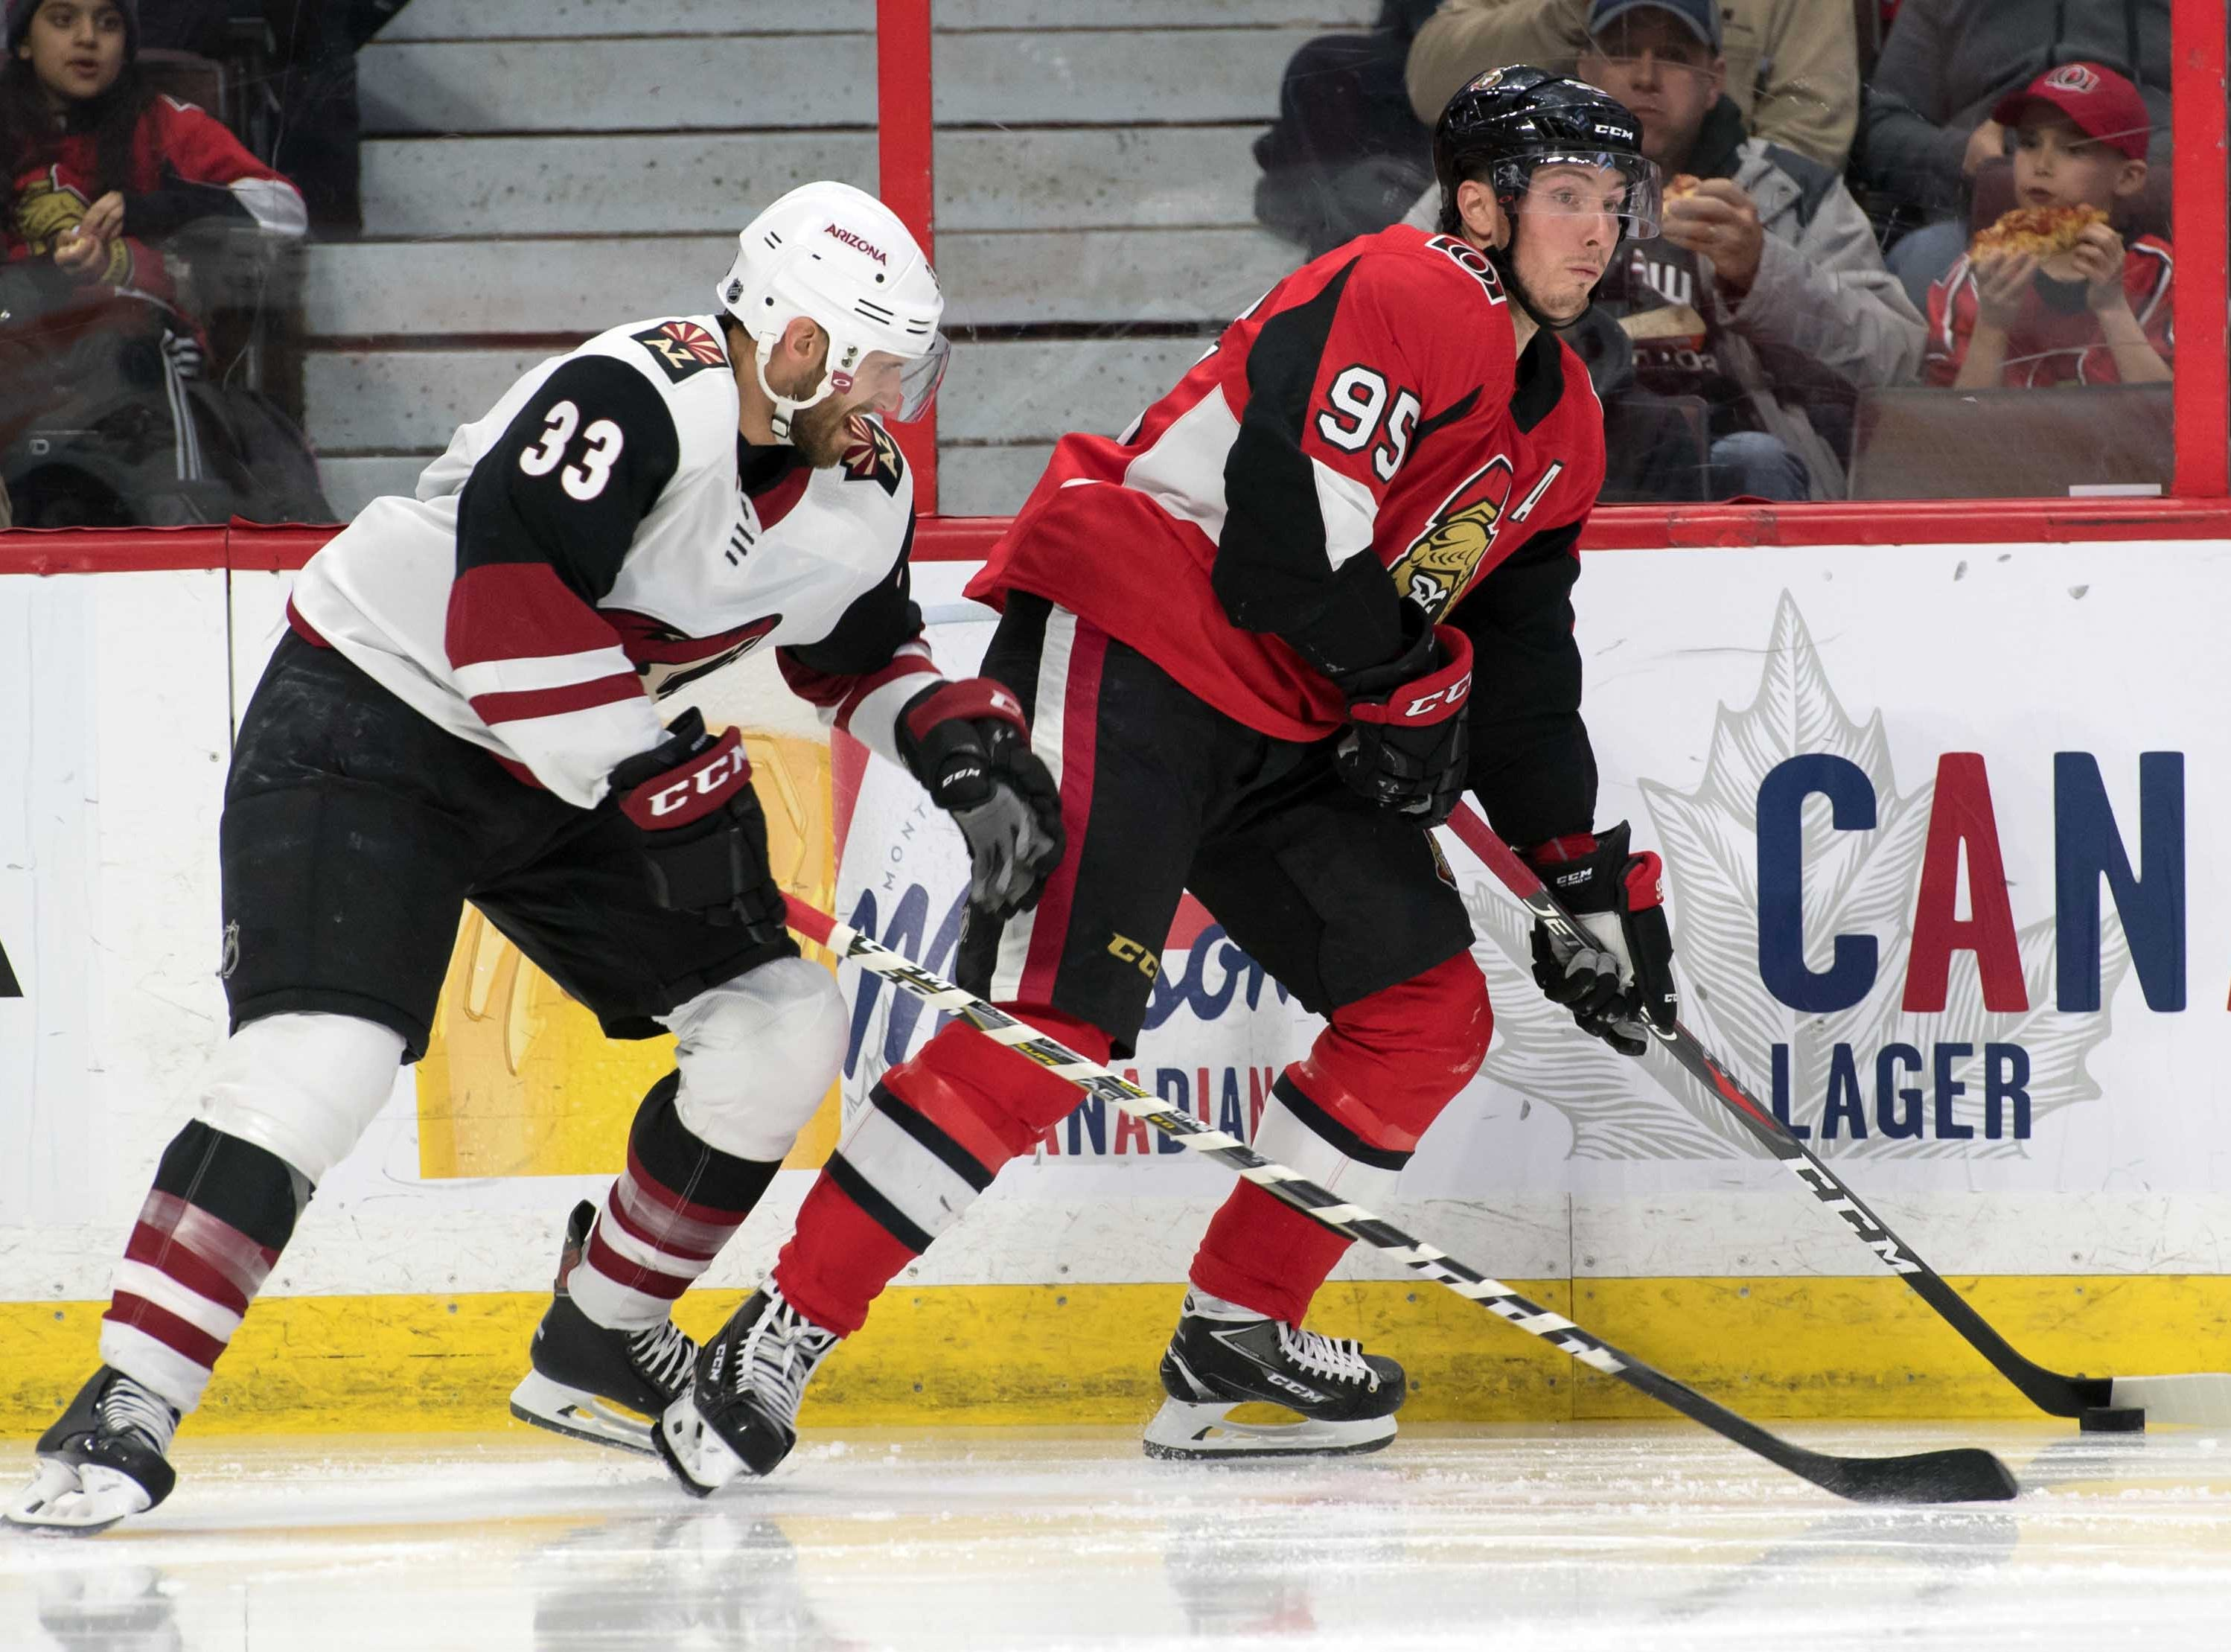 Jan 22, 2019; Ottawa, Ontario, CAN; Arizona Coyotes defenseman Alex Goligoski (33) chases Ottawa Senators [center Matt Duchene (95) in the second period at the Canadian Tire Centre. Mandatory Credit: Marc DesRosiers-USA TODAY Sports